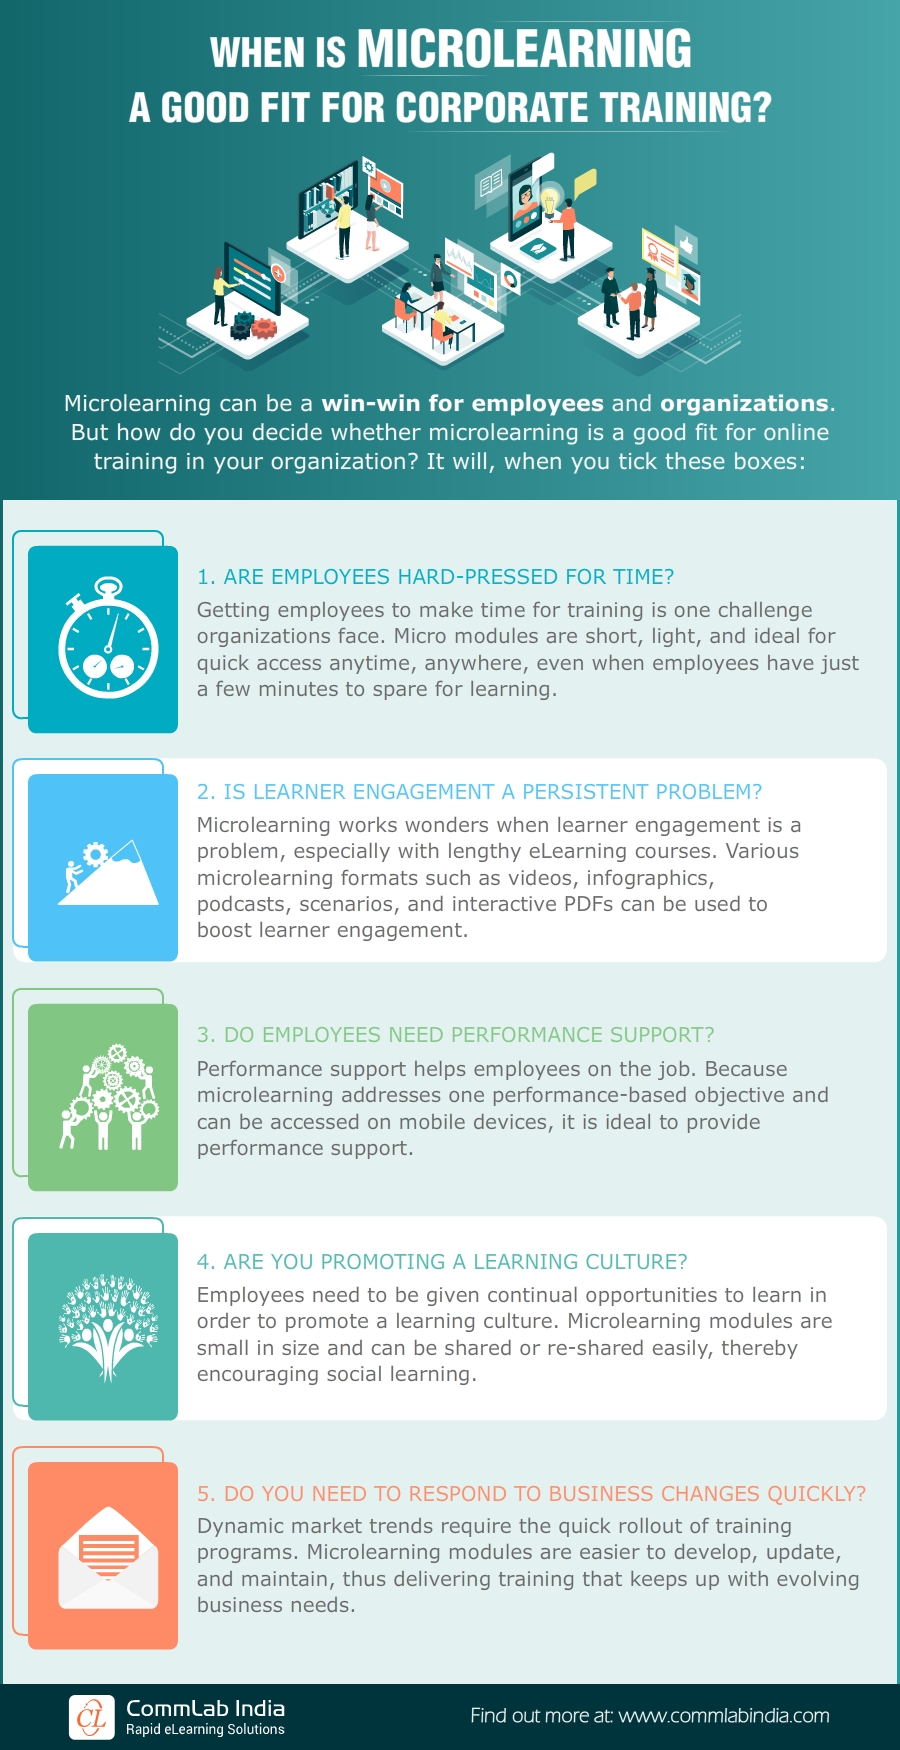 When is Microlearning a Good Fit for Corporate Training? [Infographic]